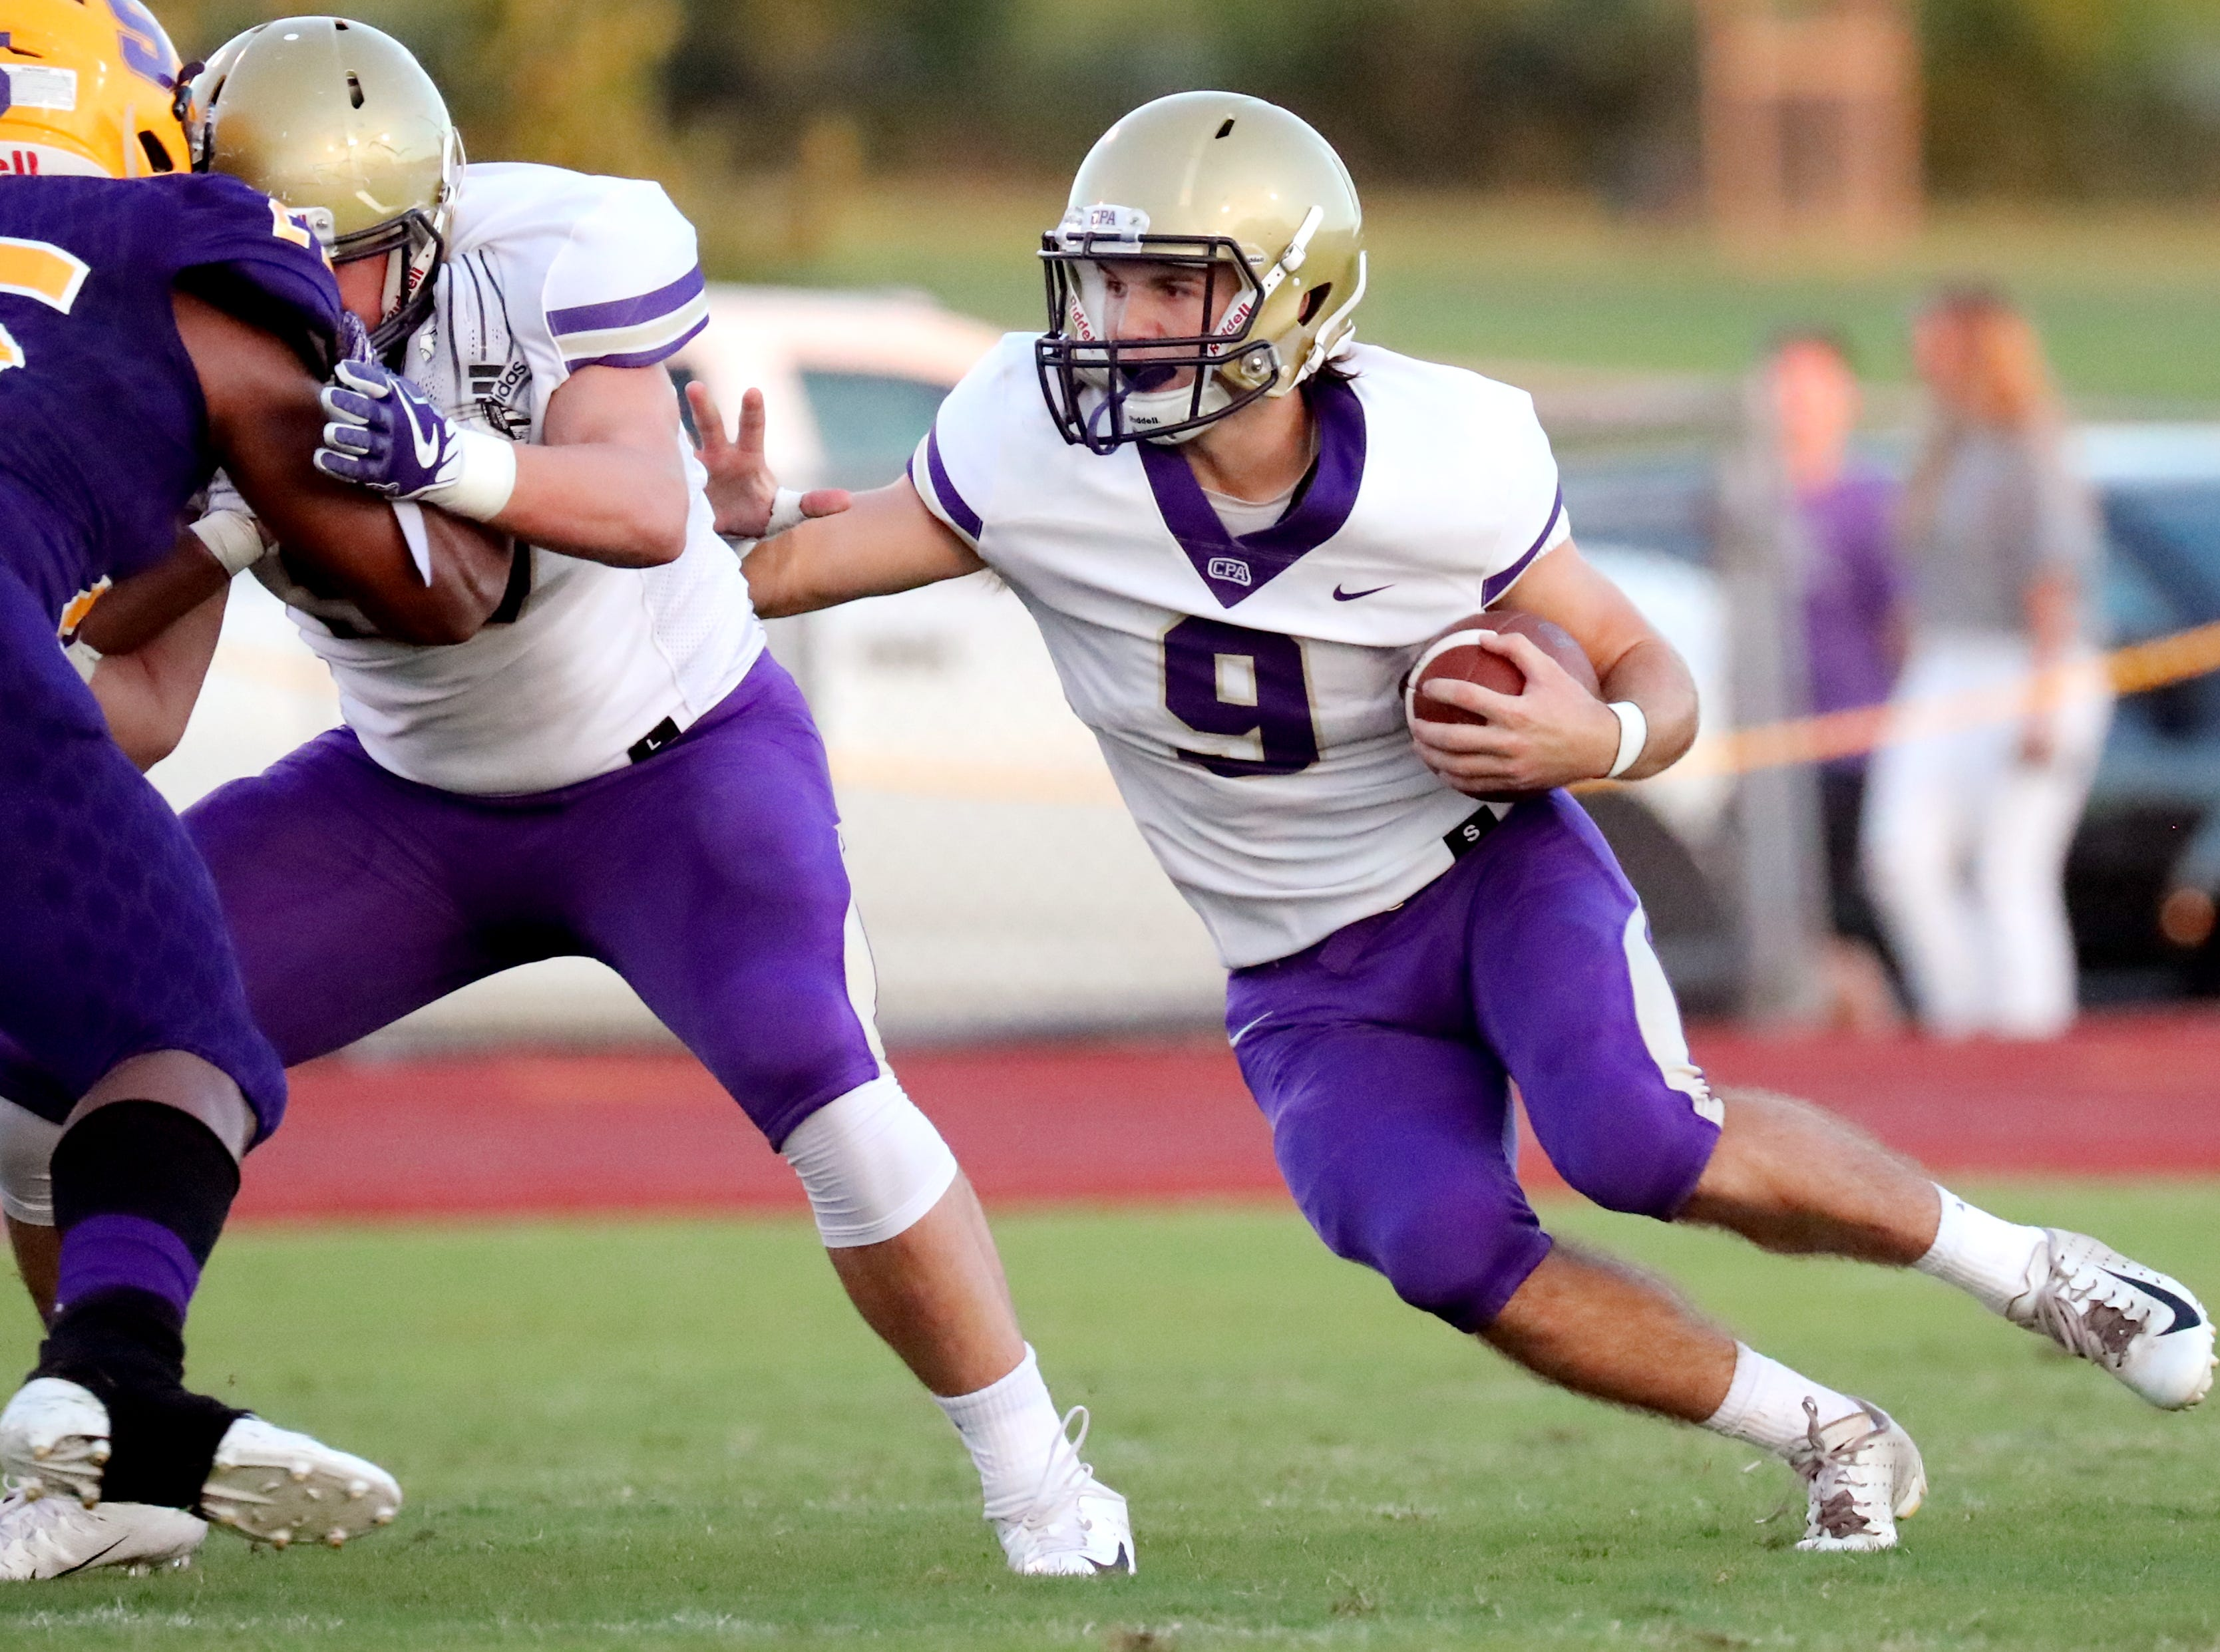 CPA's Sam West (9) runs the ball during game against Smyrna at Smyrna High School on Friday, Aug. 31, 2018.